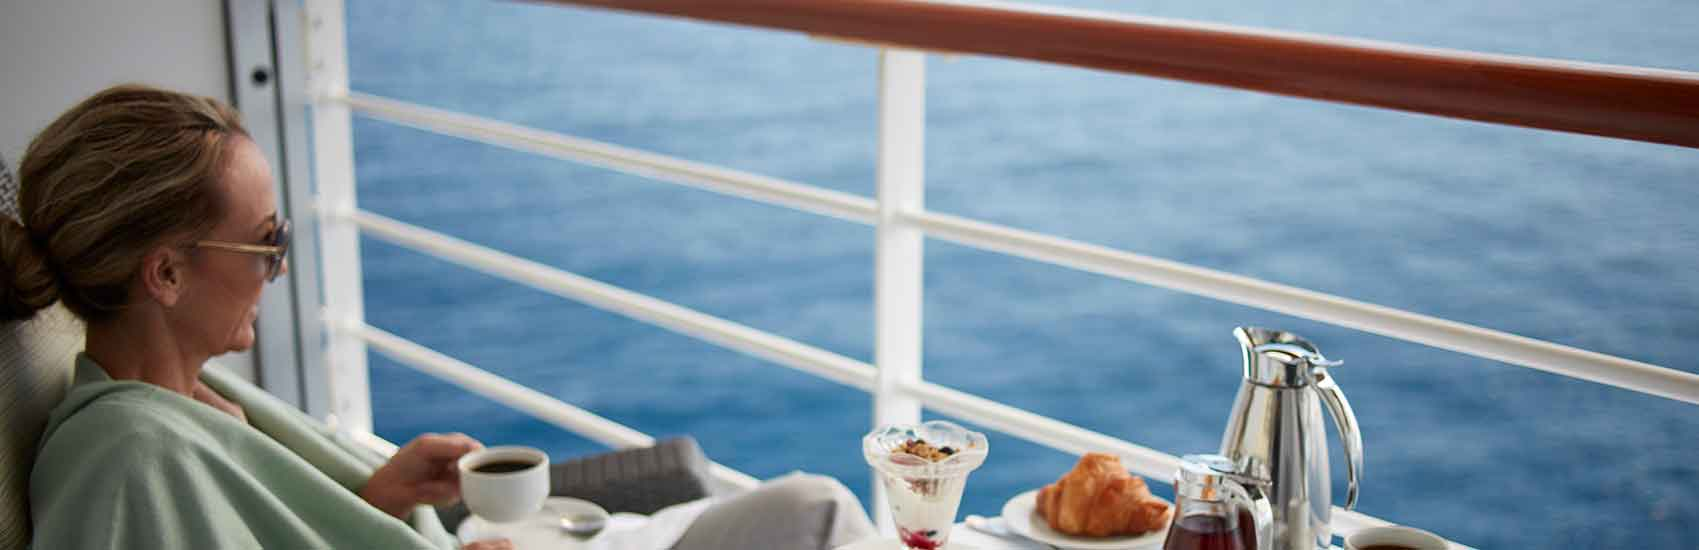 Exclusive Virtuoso Offer with Oceania Cruises 1